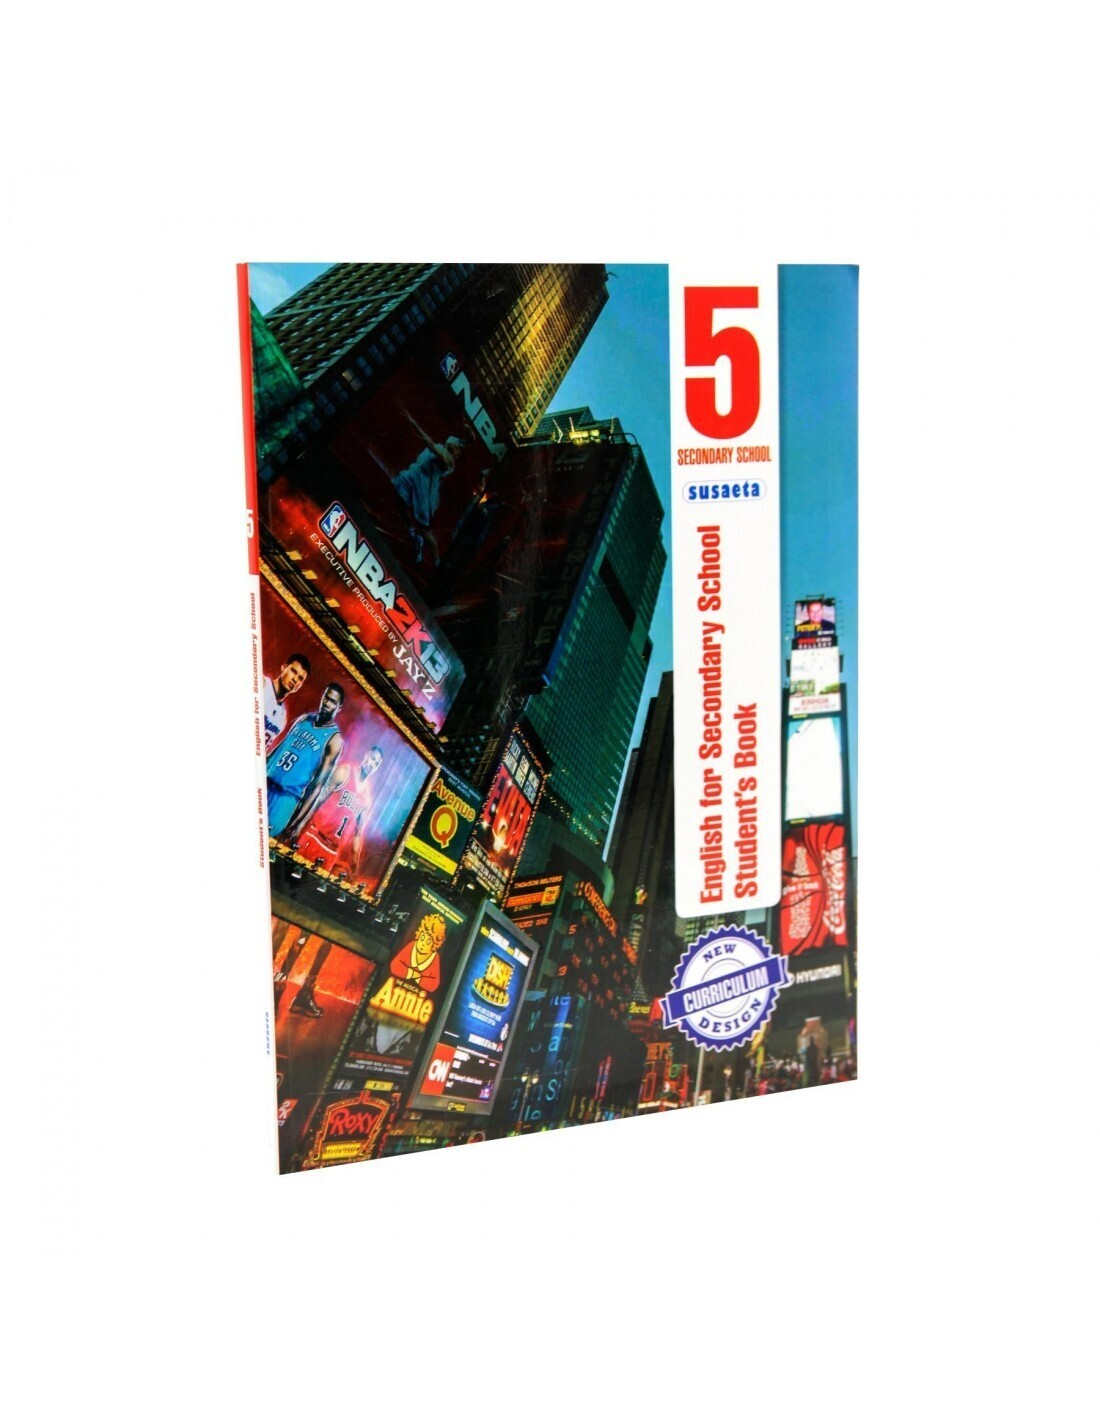 English for Secondary 5 - Student's Book. Susaeta